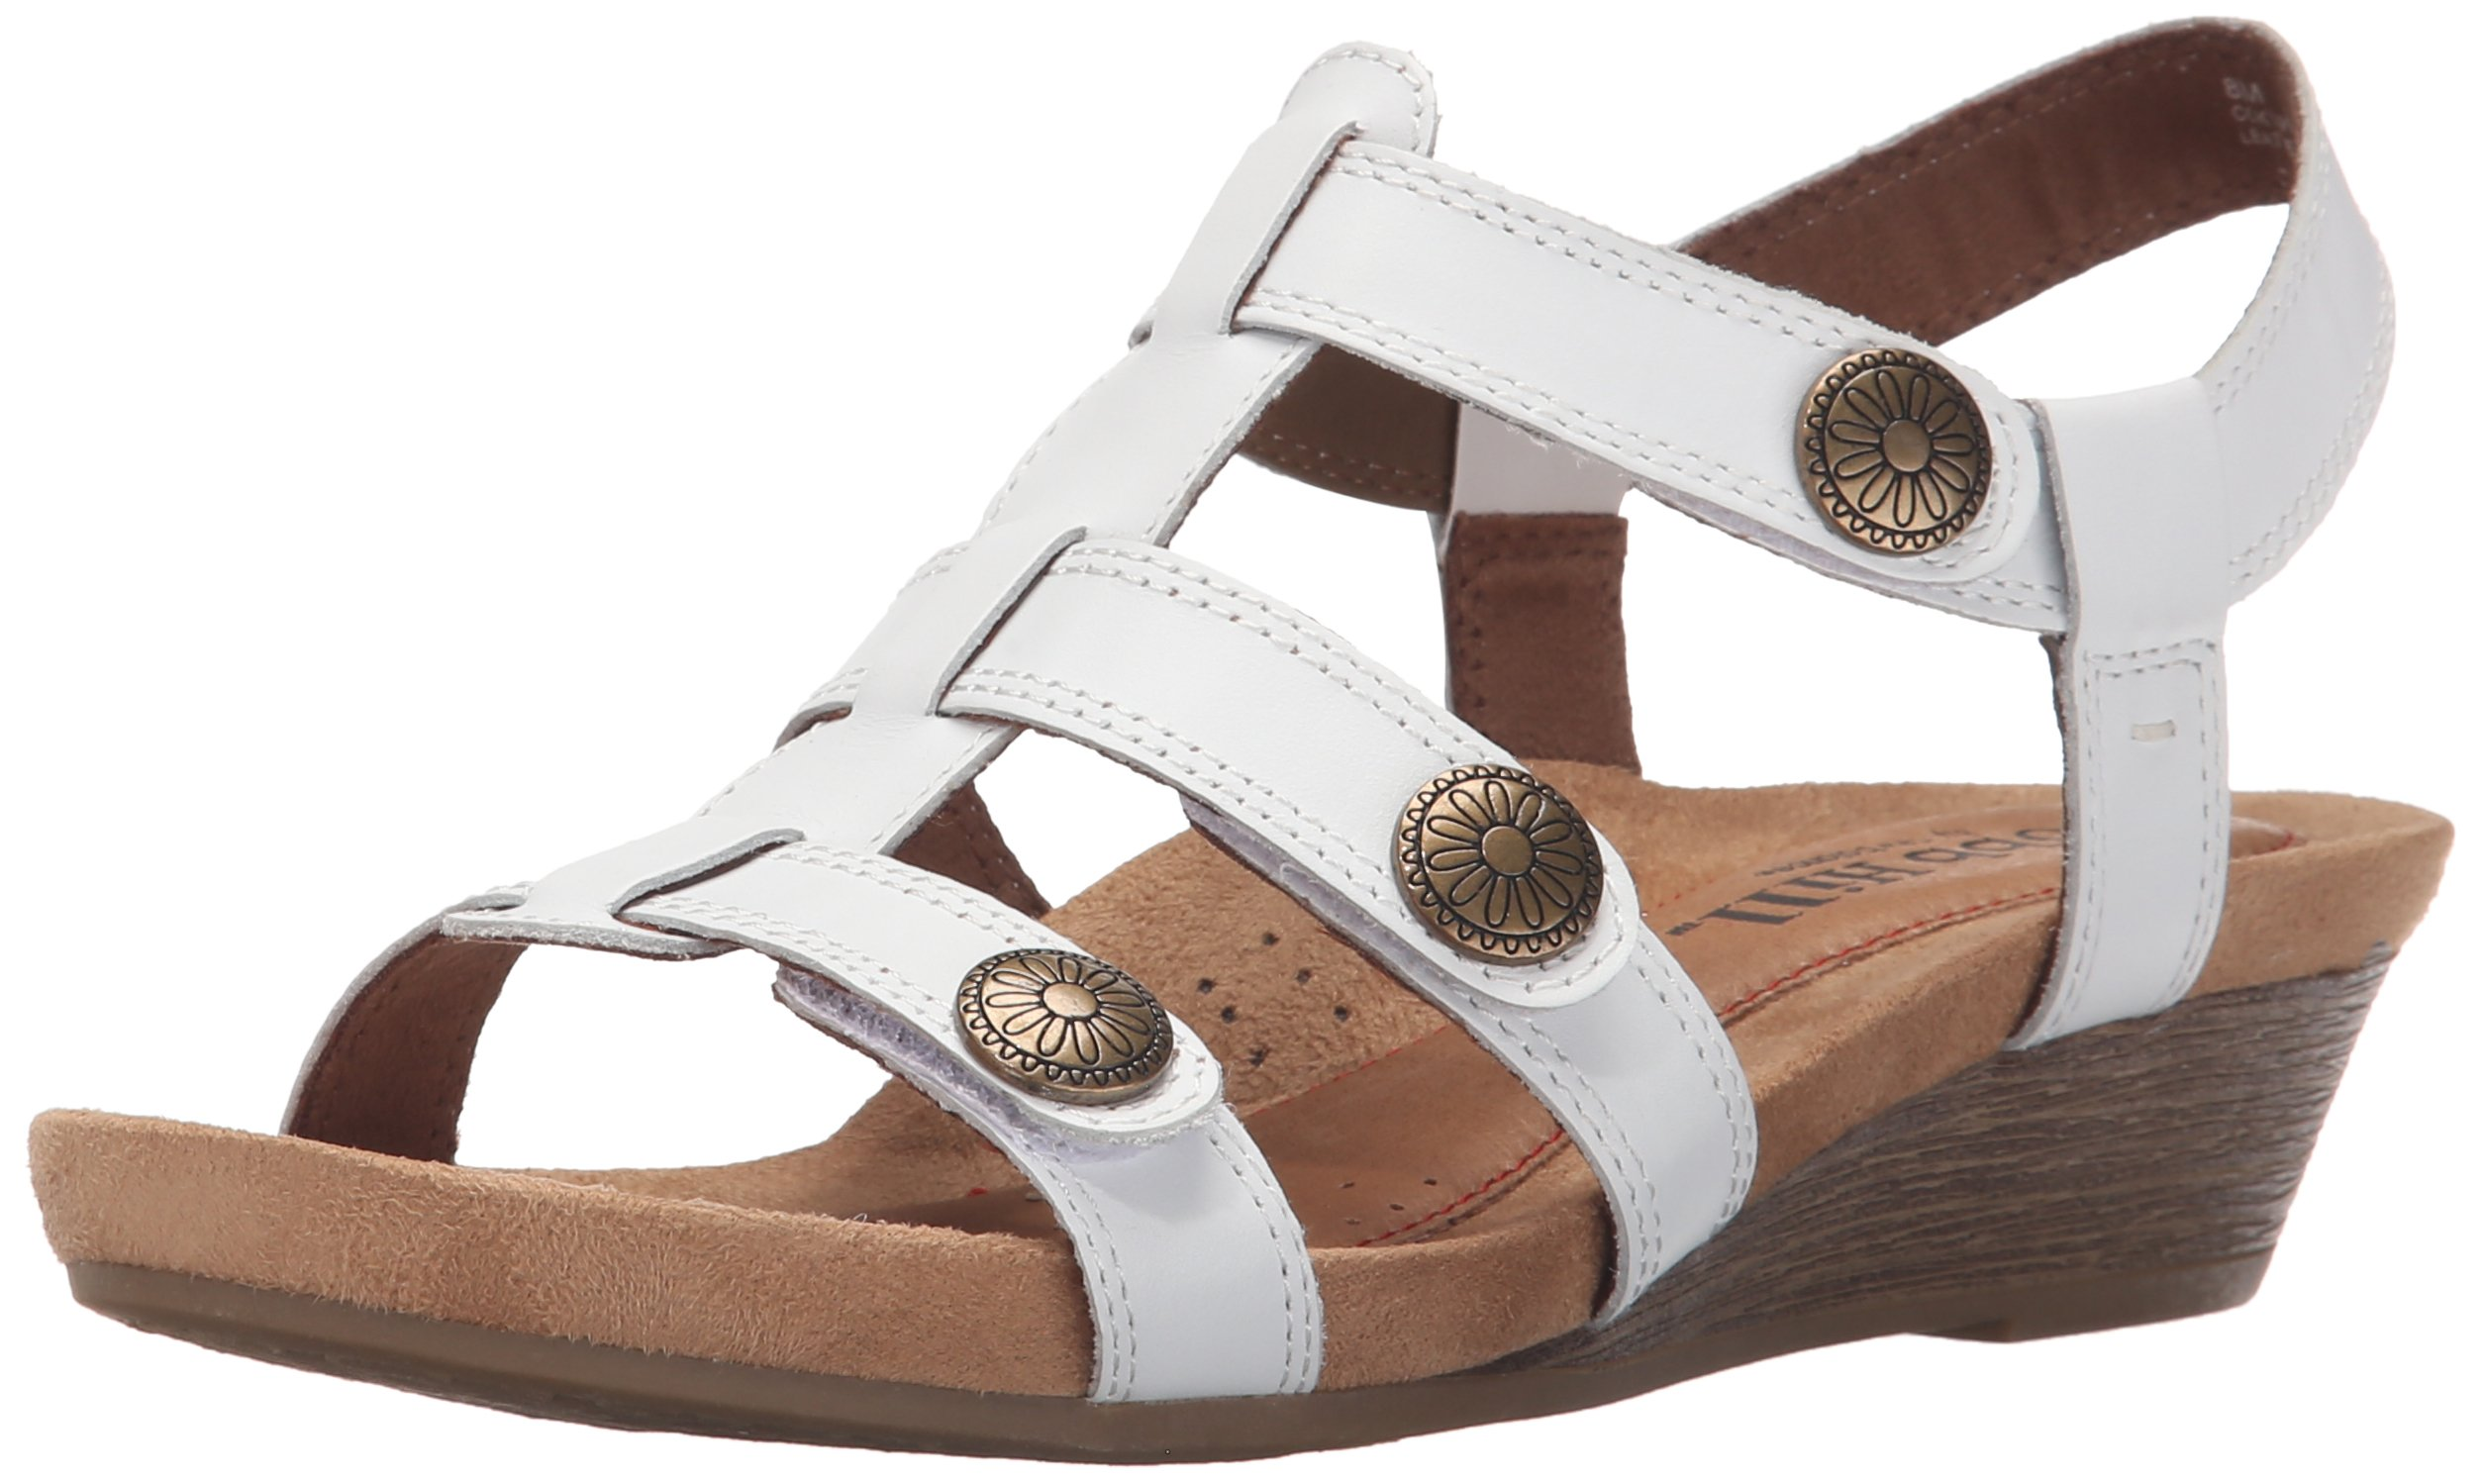 Cobb Hill Rockport Women's Harper-CH Wedge Sandal, White, 8.5 W US